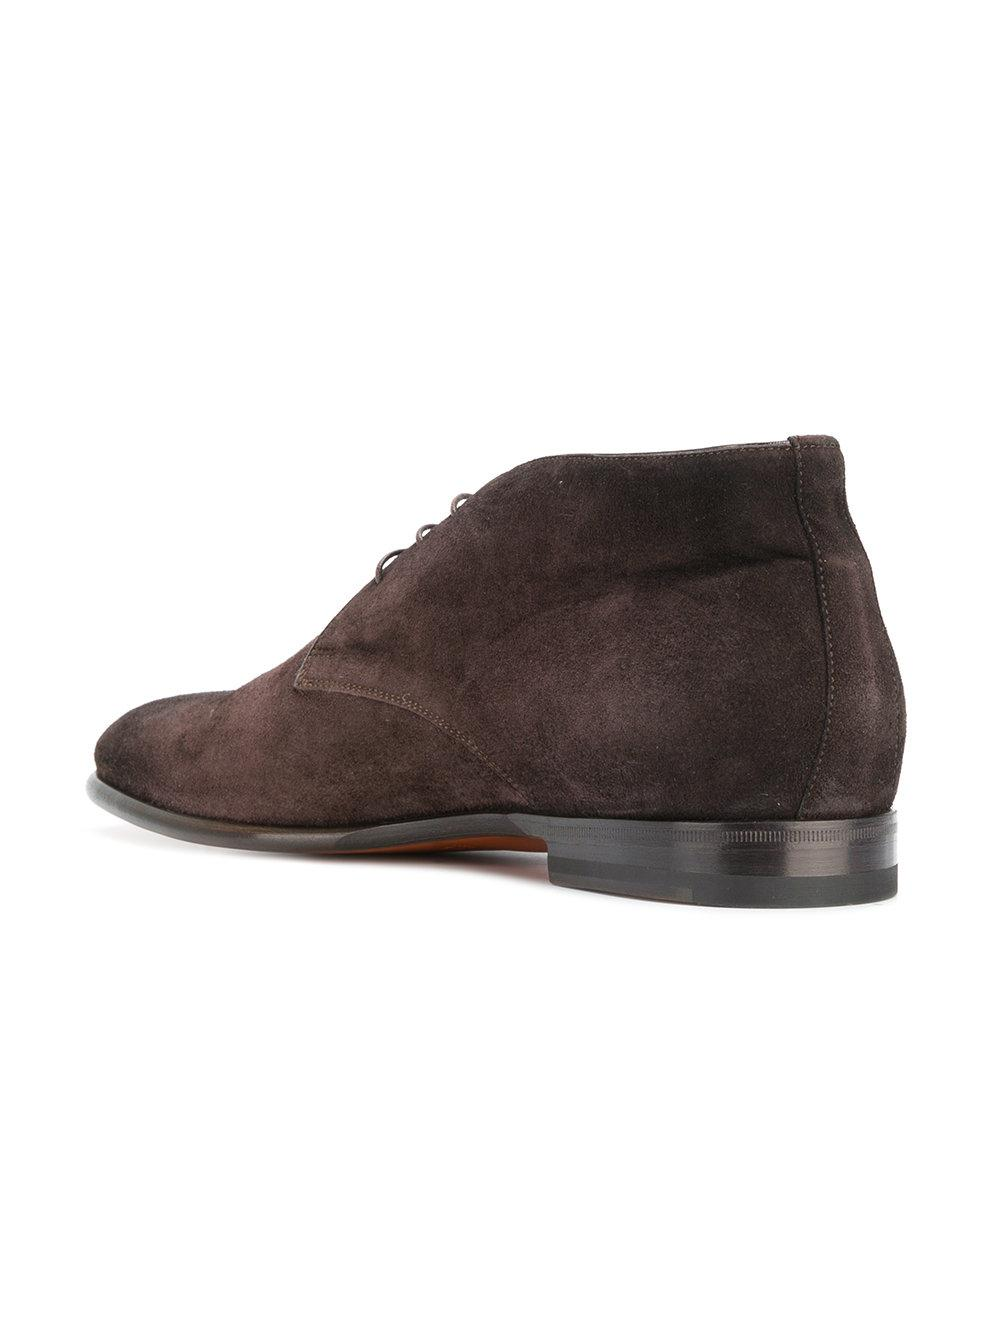 the best attitude 14ad6 f5aa8 santoni-Brown-Lace-up-Ankle-Boots.jpeg